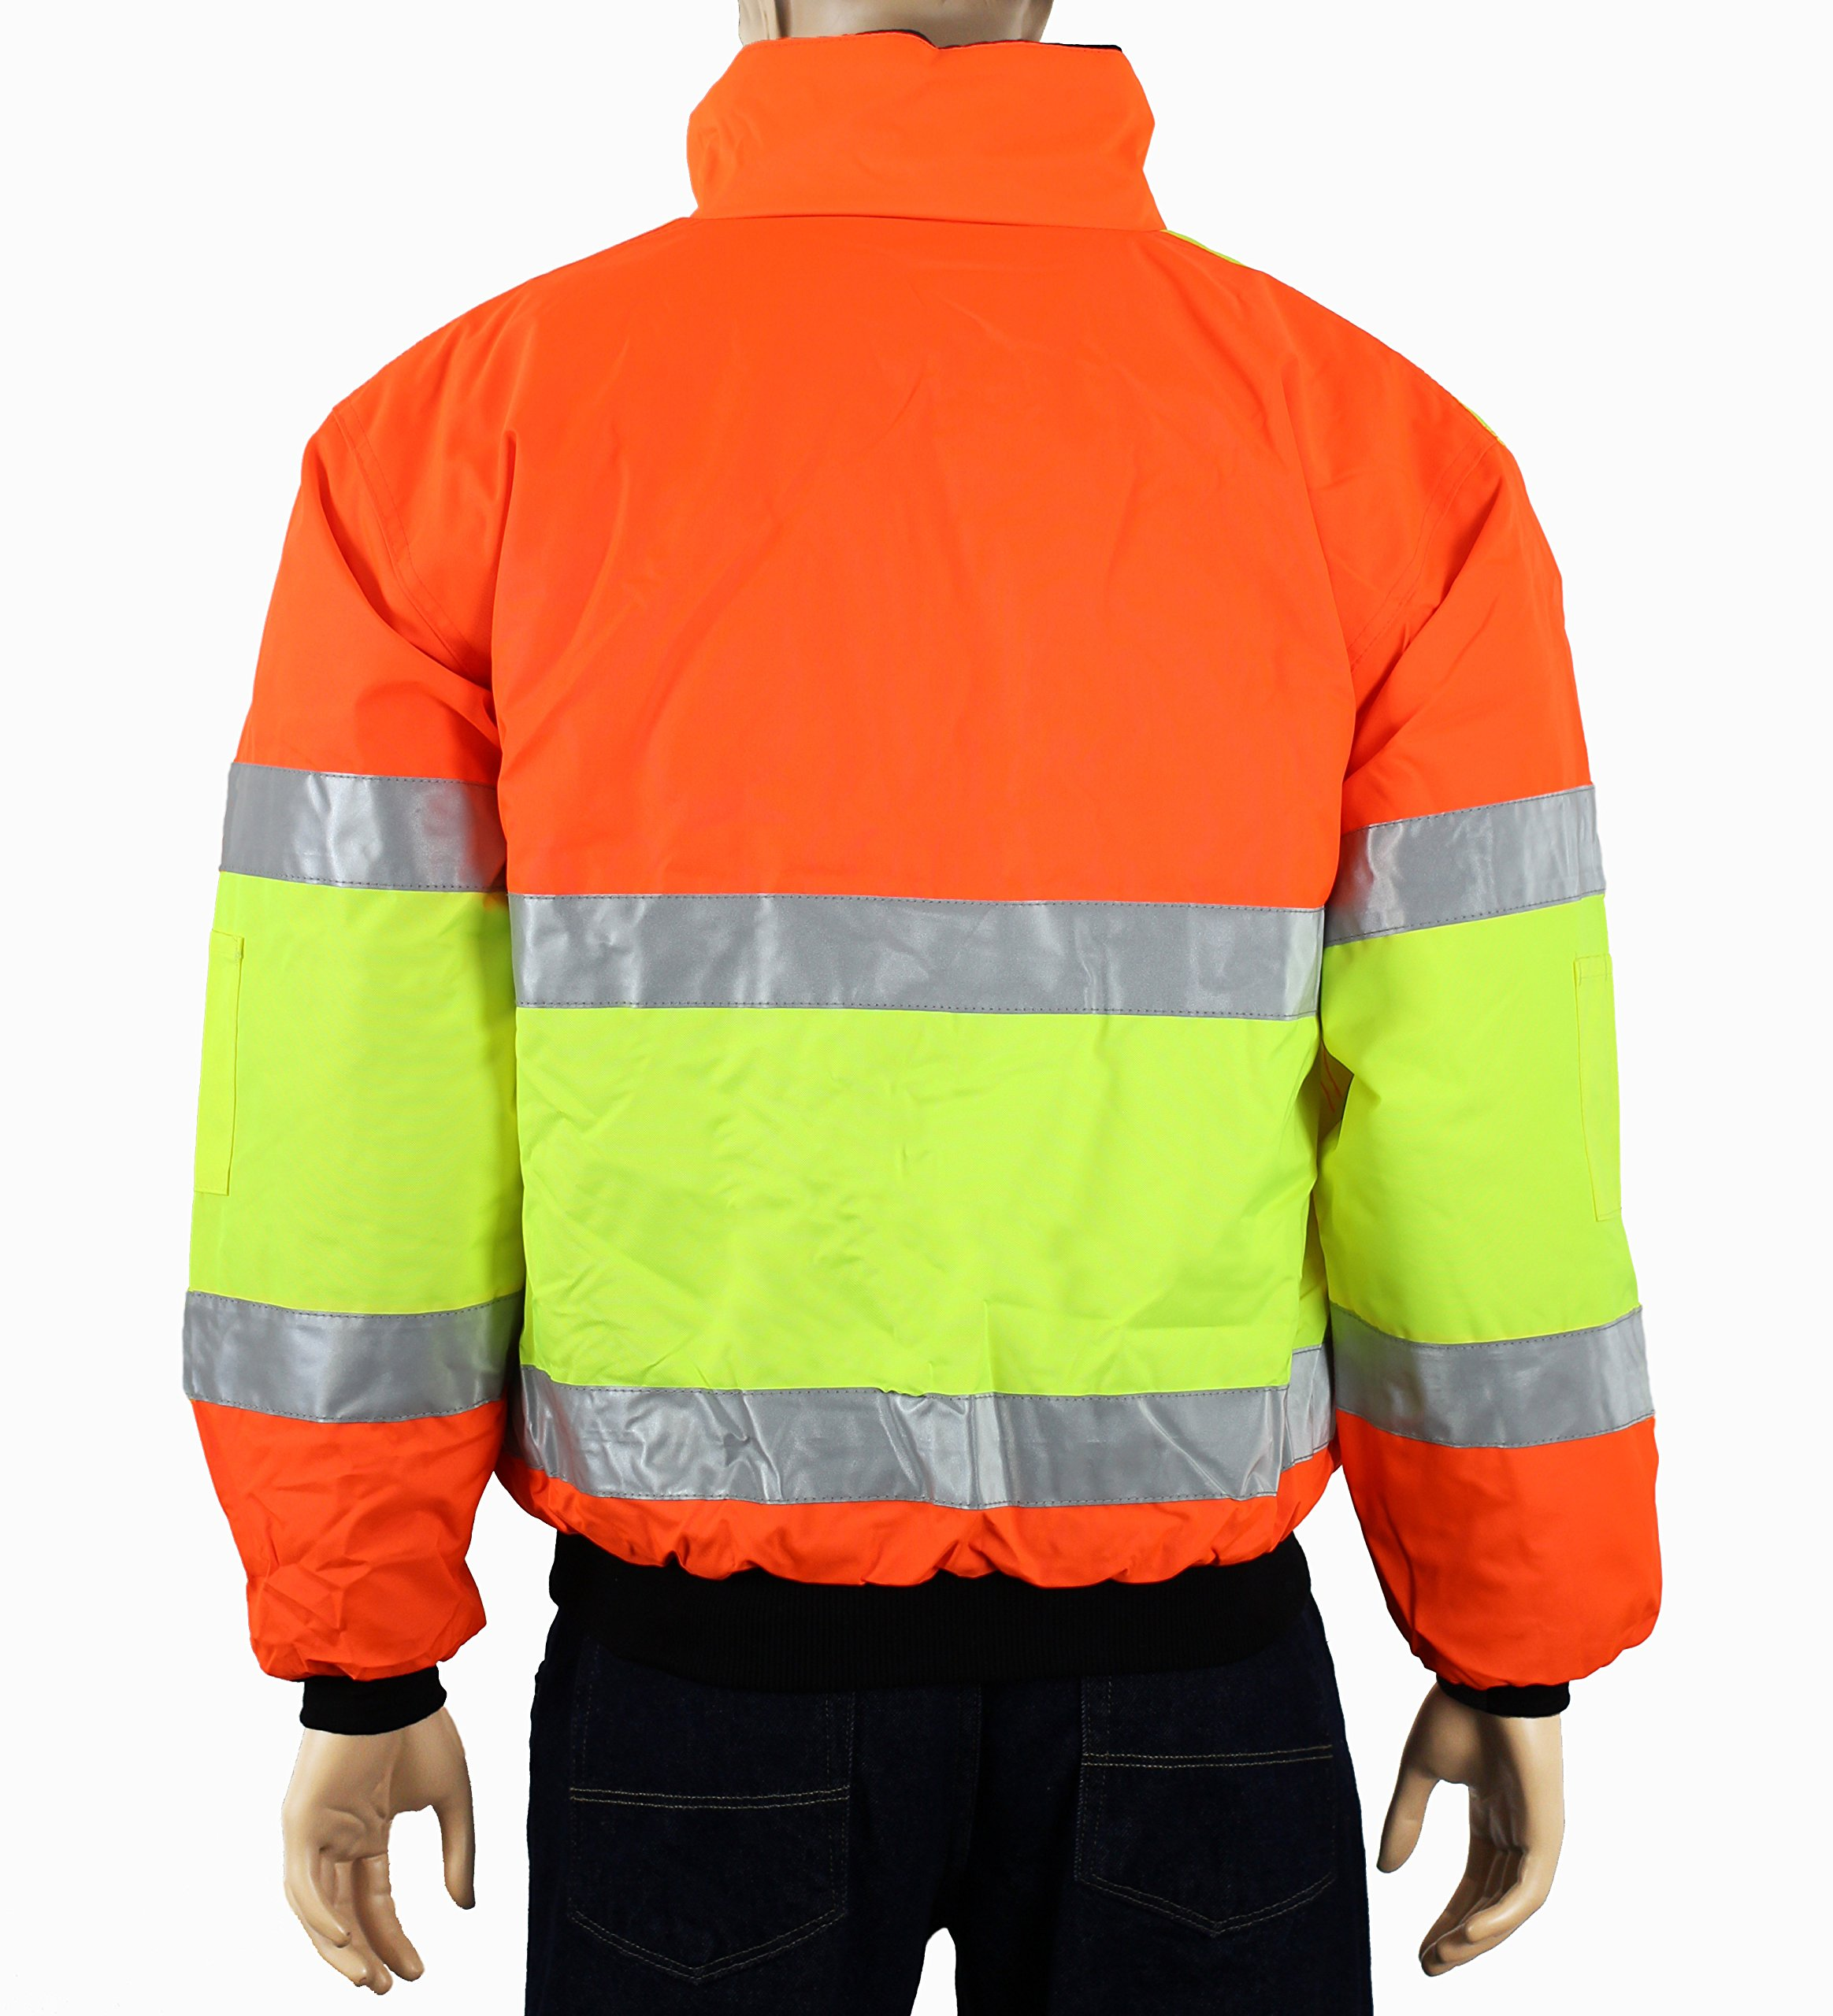 Safety Depot Cold Climate Safety Jacket ANSI Approved Class 3, Reversible, Water Resistant with Pockets (Large) by Safety Depot (Image #3)